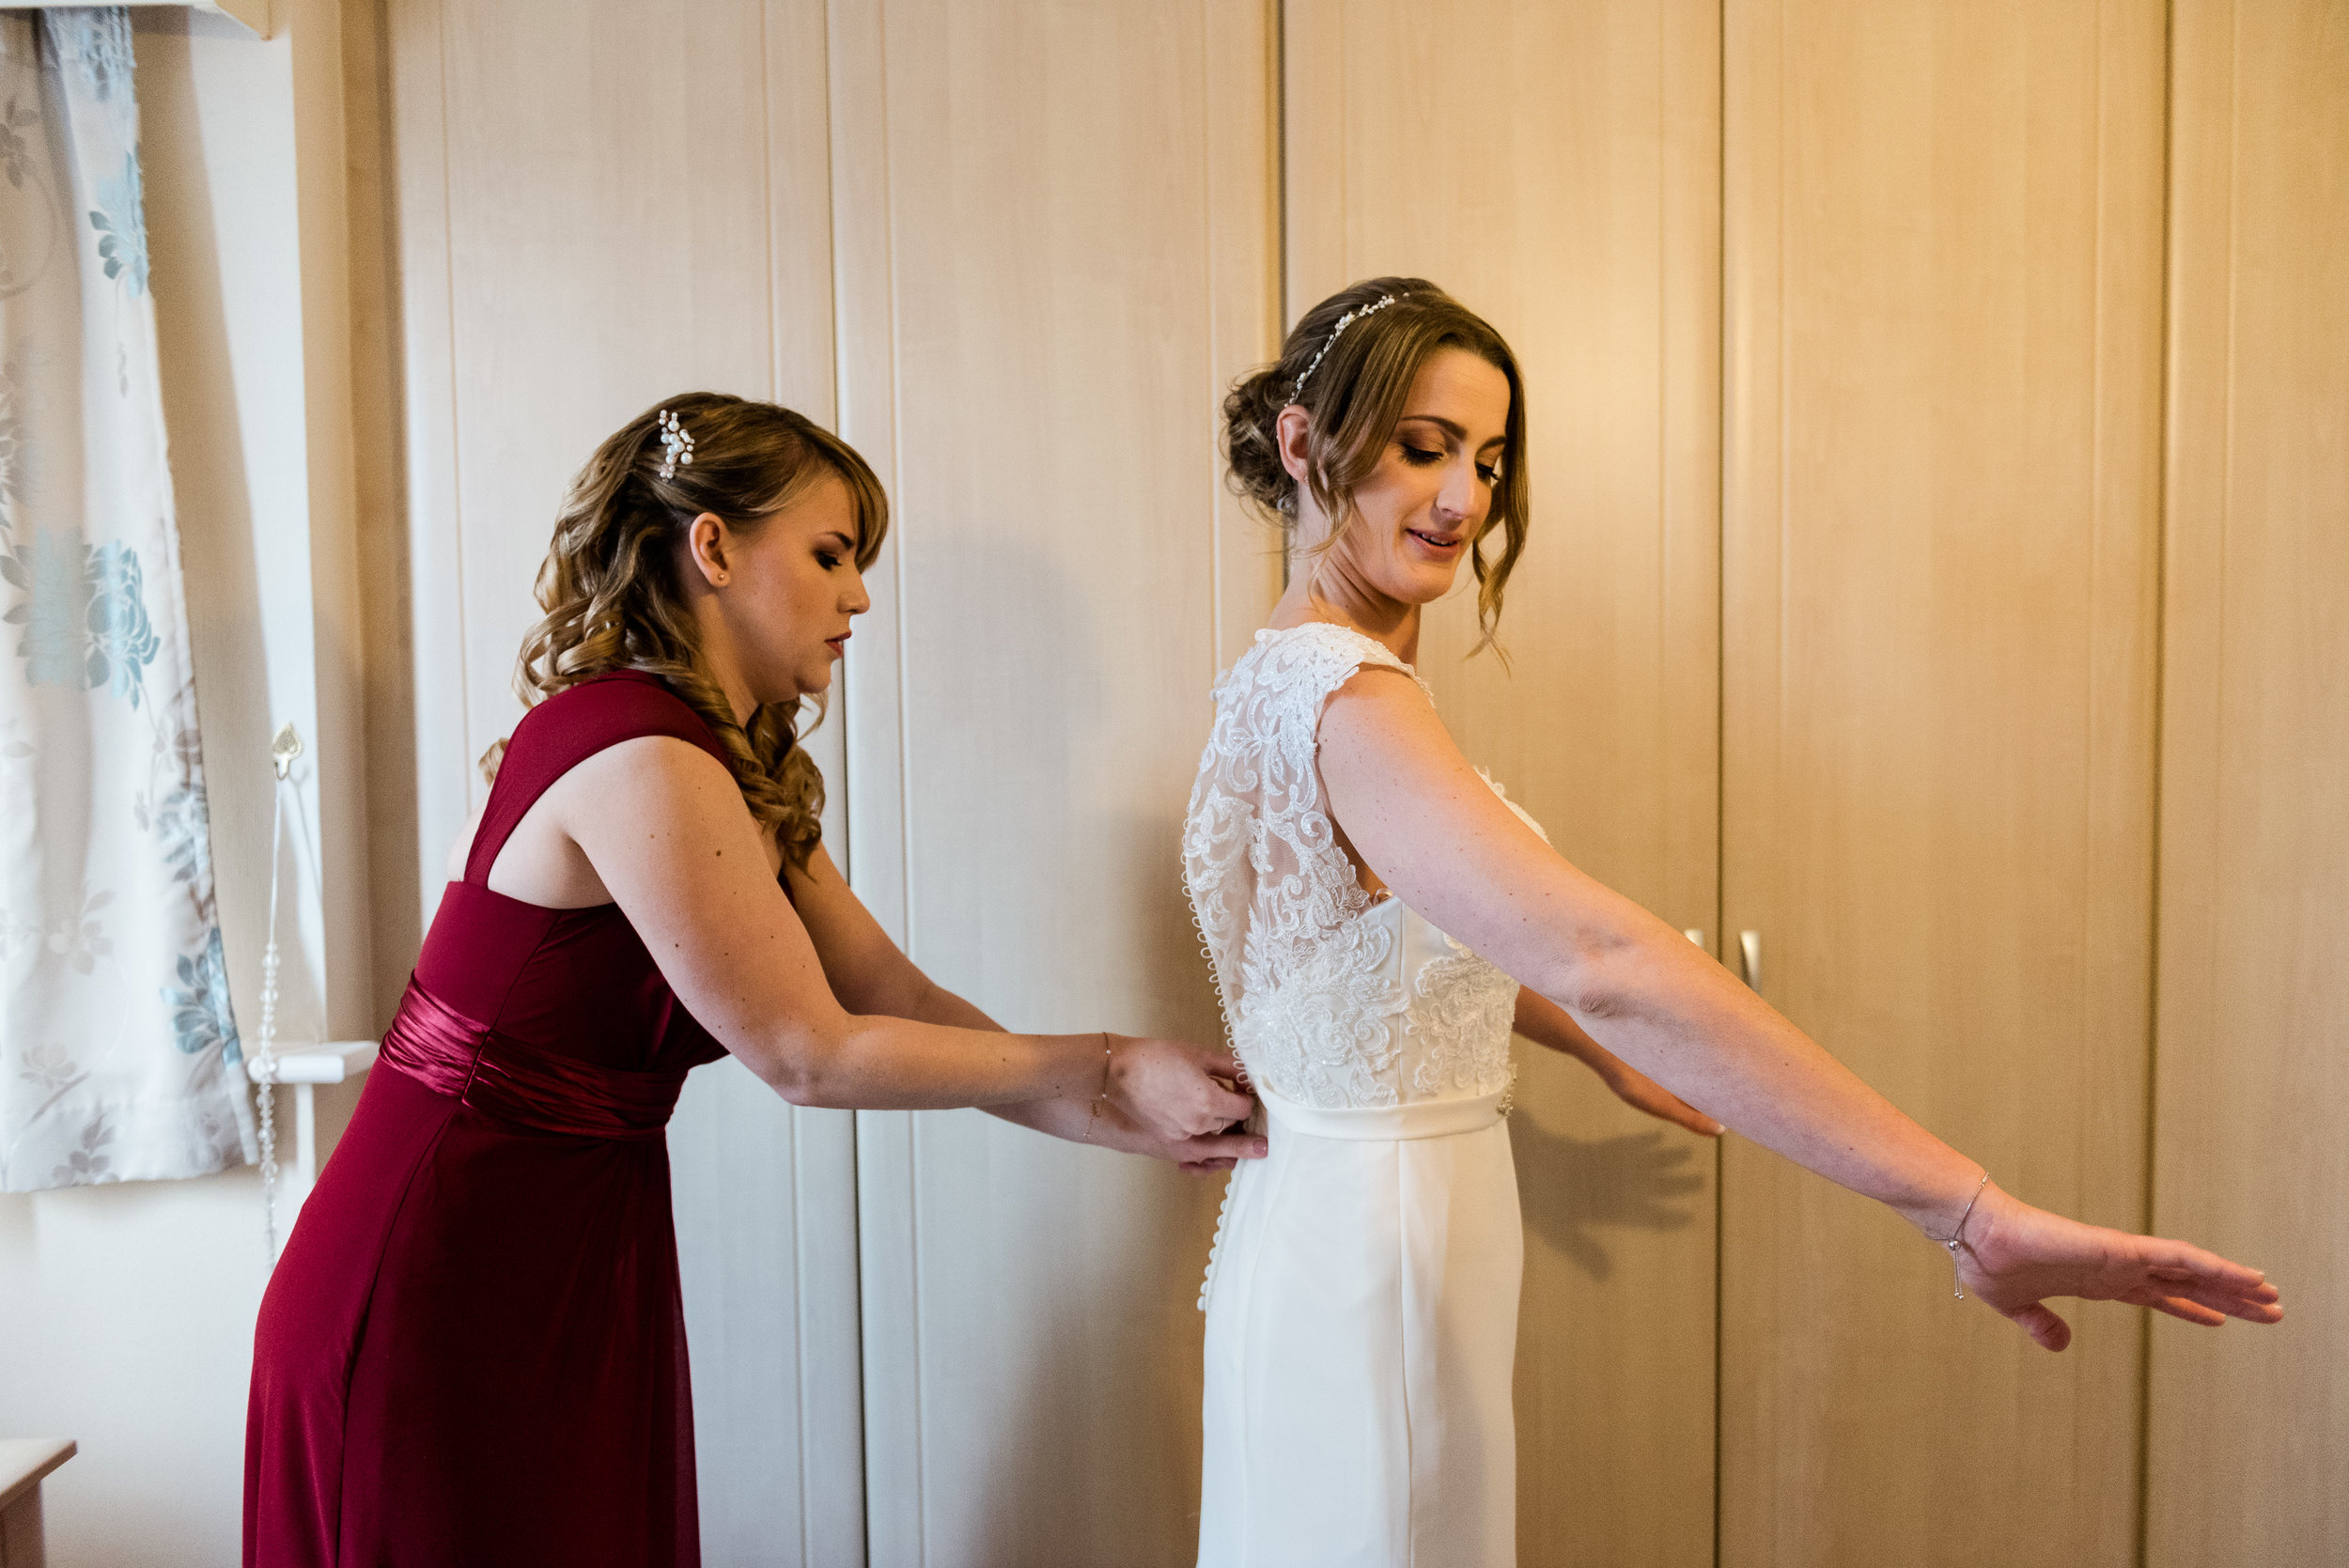 Birmingham Documentary Wedding Photography at New Hall, Sutton Coldfield Turkish Red Candid Reportage - Jenny Harper-10.jpg